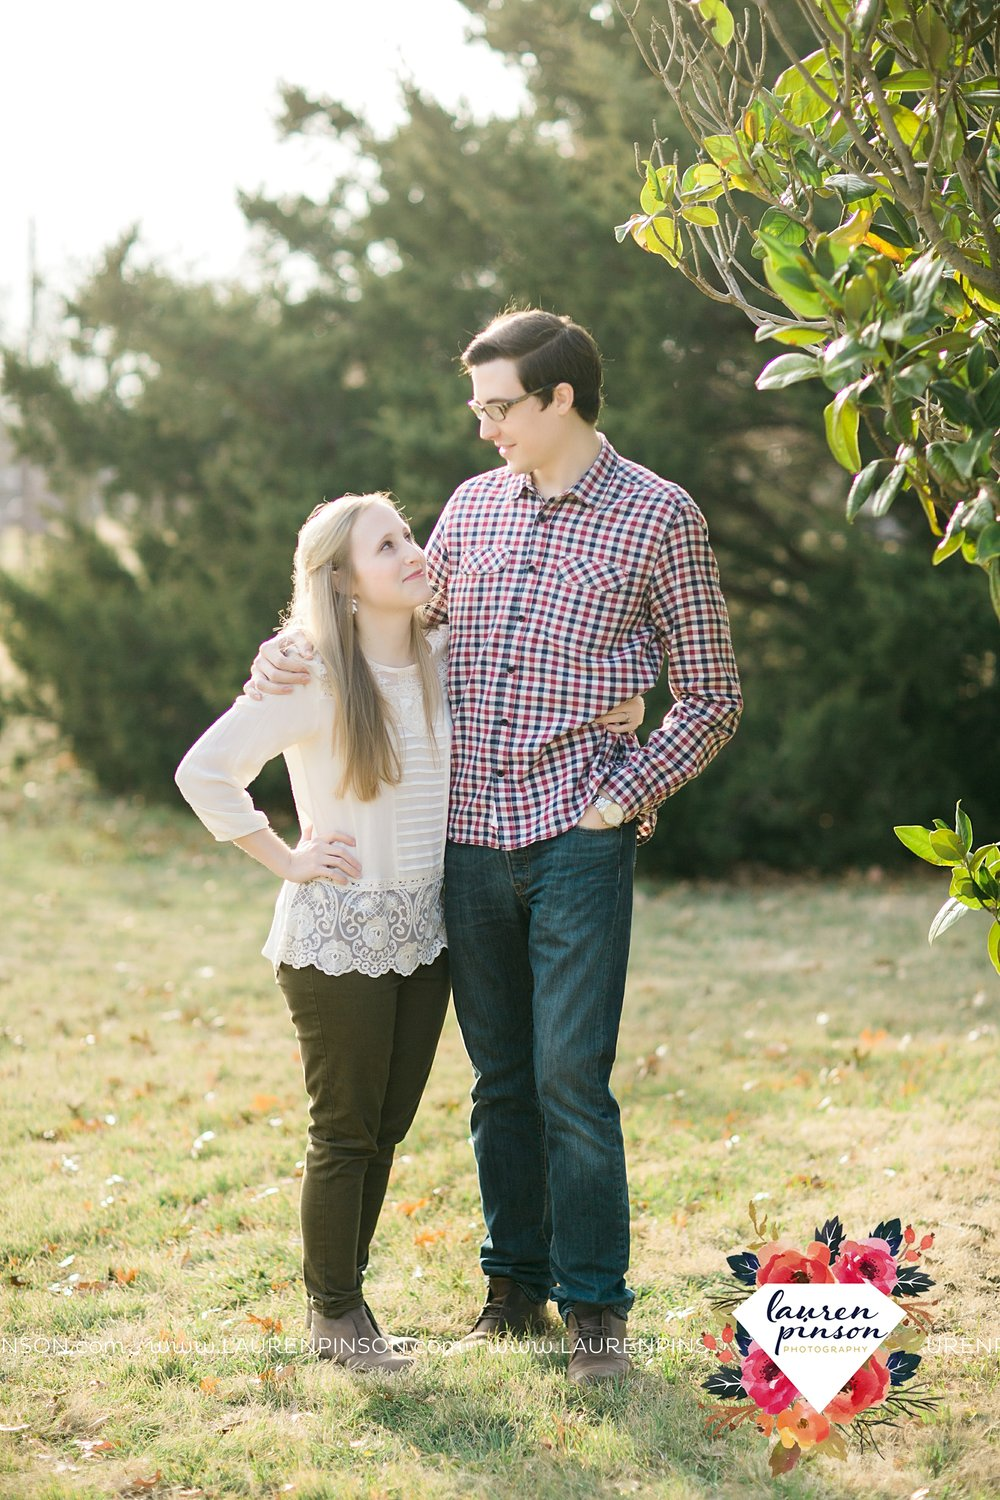 katie-and-joshua-frank-and-joes-wichita-falls-engagement-session-lake-wichita-park-lauren-pinson-photography-00015.jpg